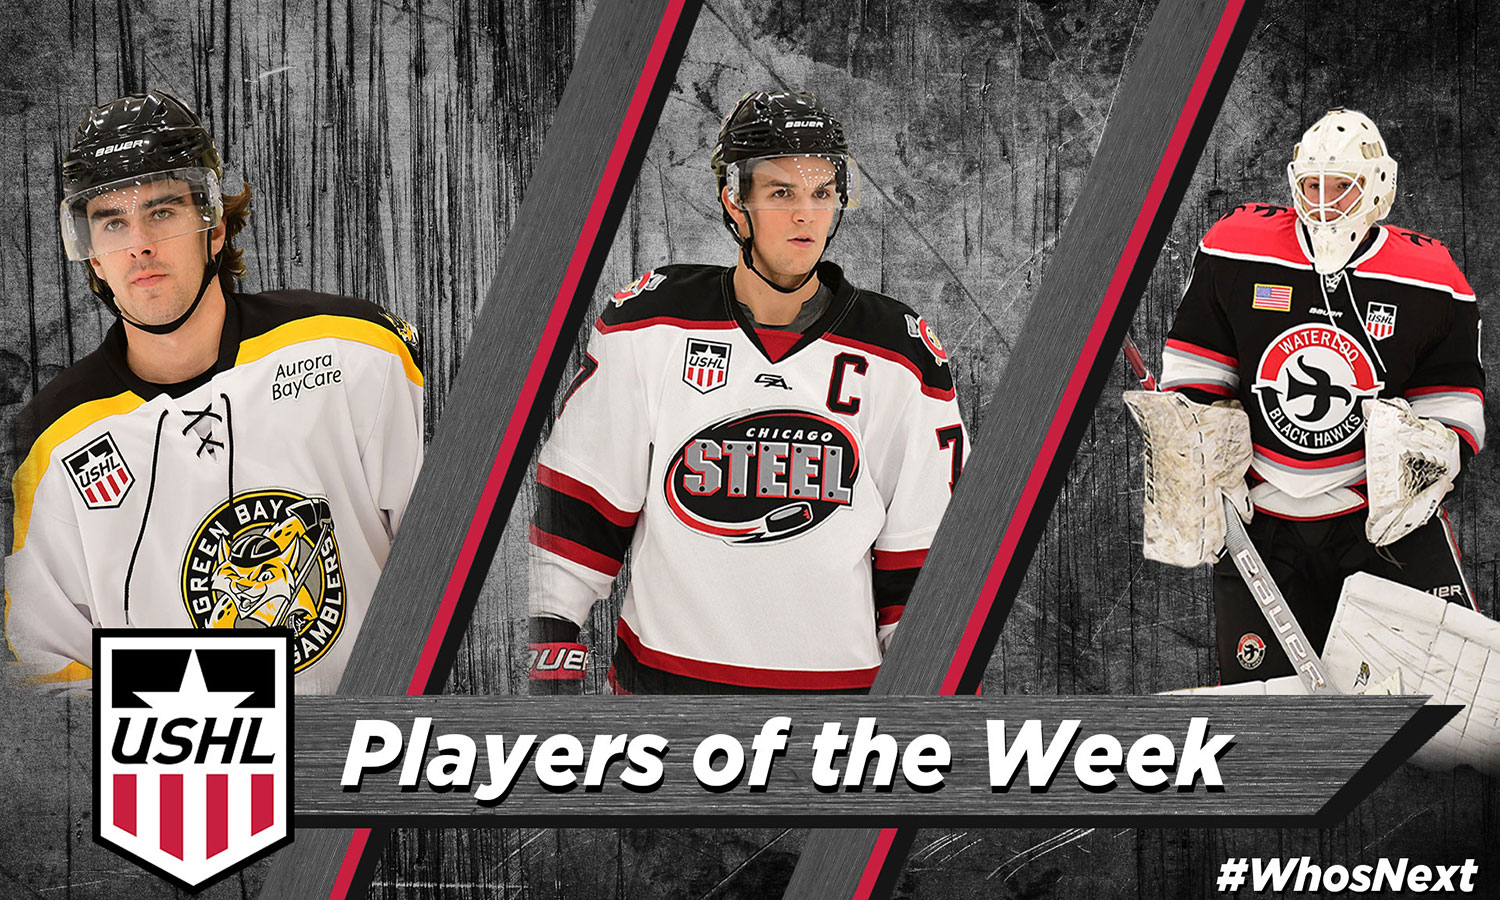 USHL: Players Of The Week - Week 18, 2018-19